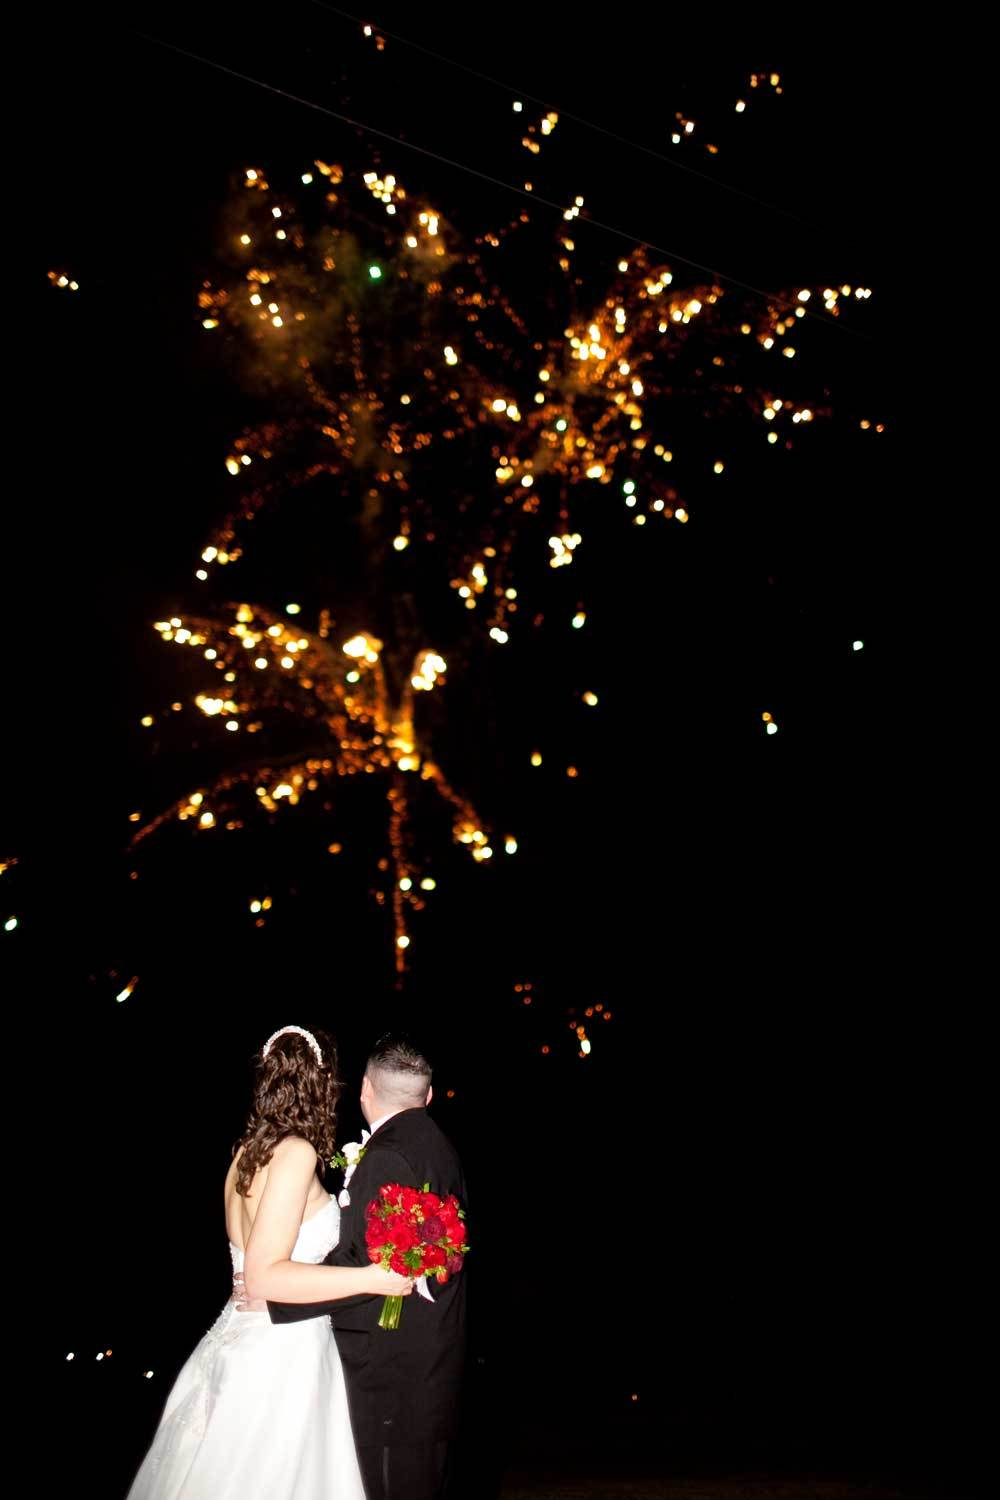 Bride, Groom, And, Exit, Victorian, House, Picture, Fireworks, Lynn michelle photography